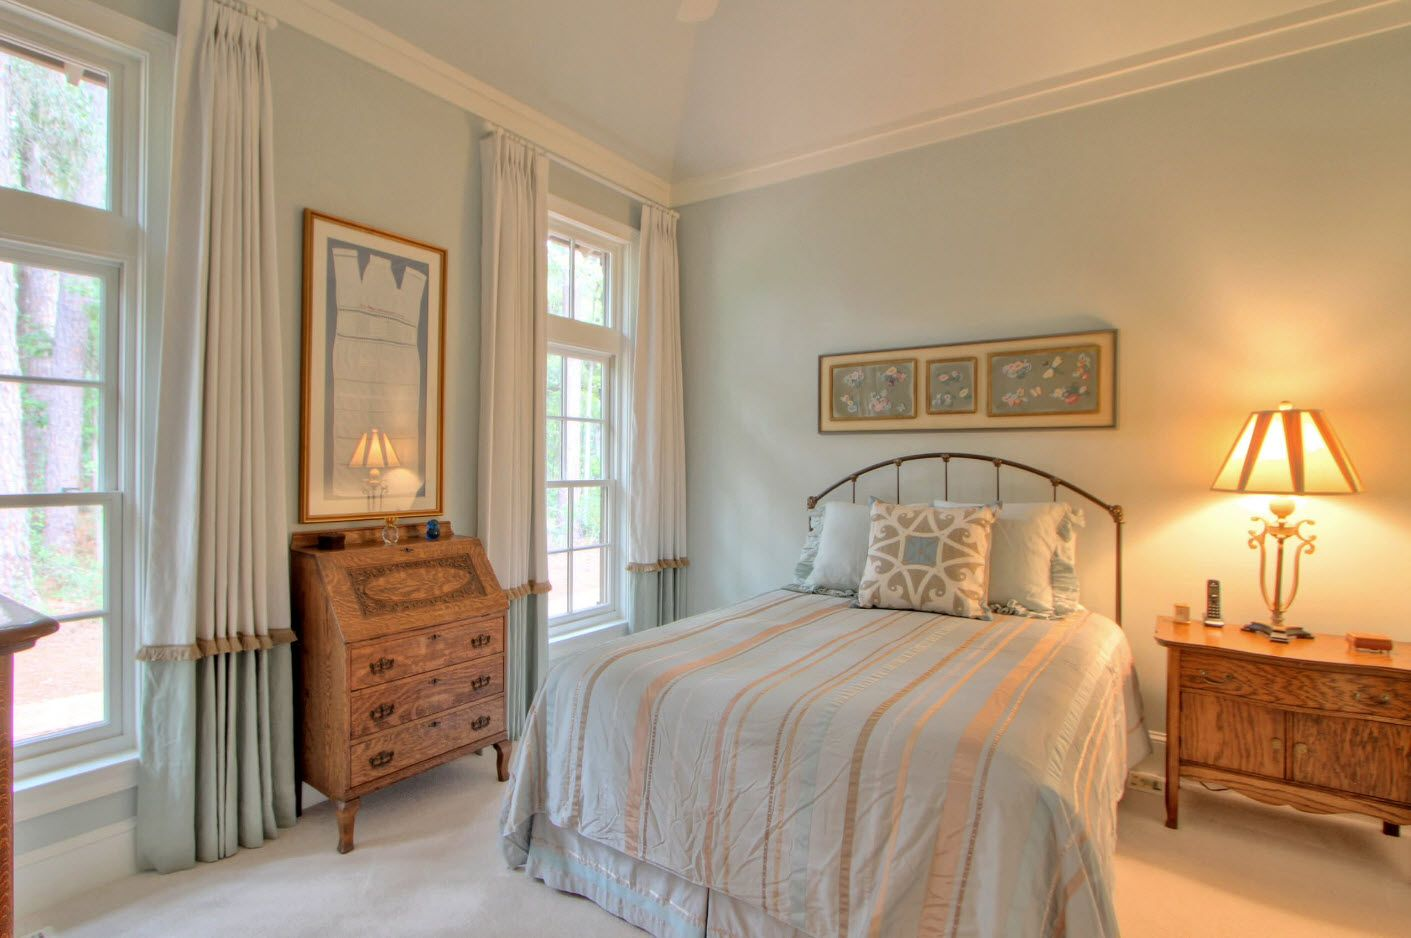 Shabby chic and classic intertwine for modern bedroom